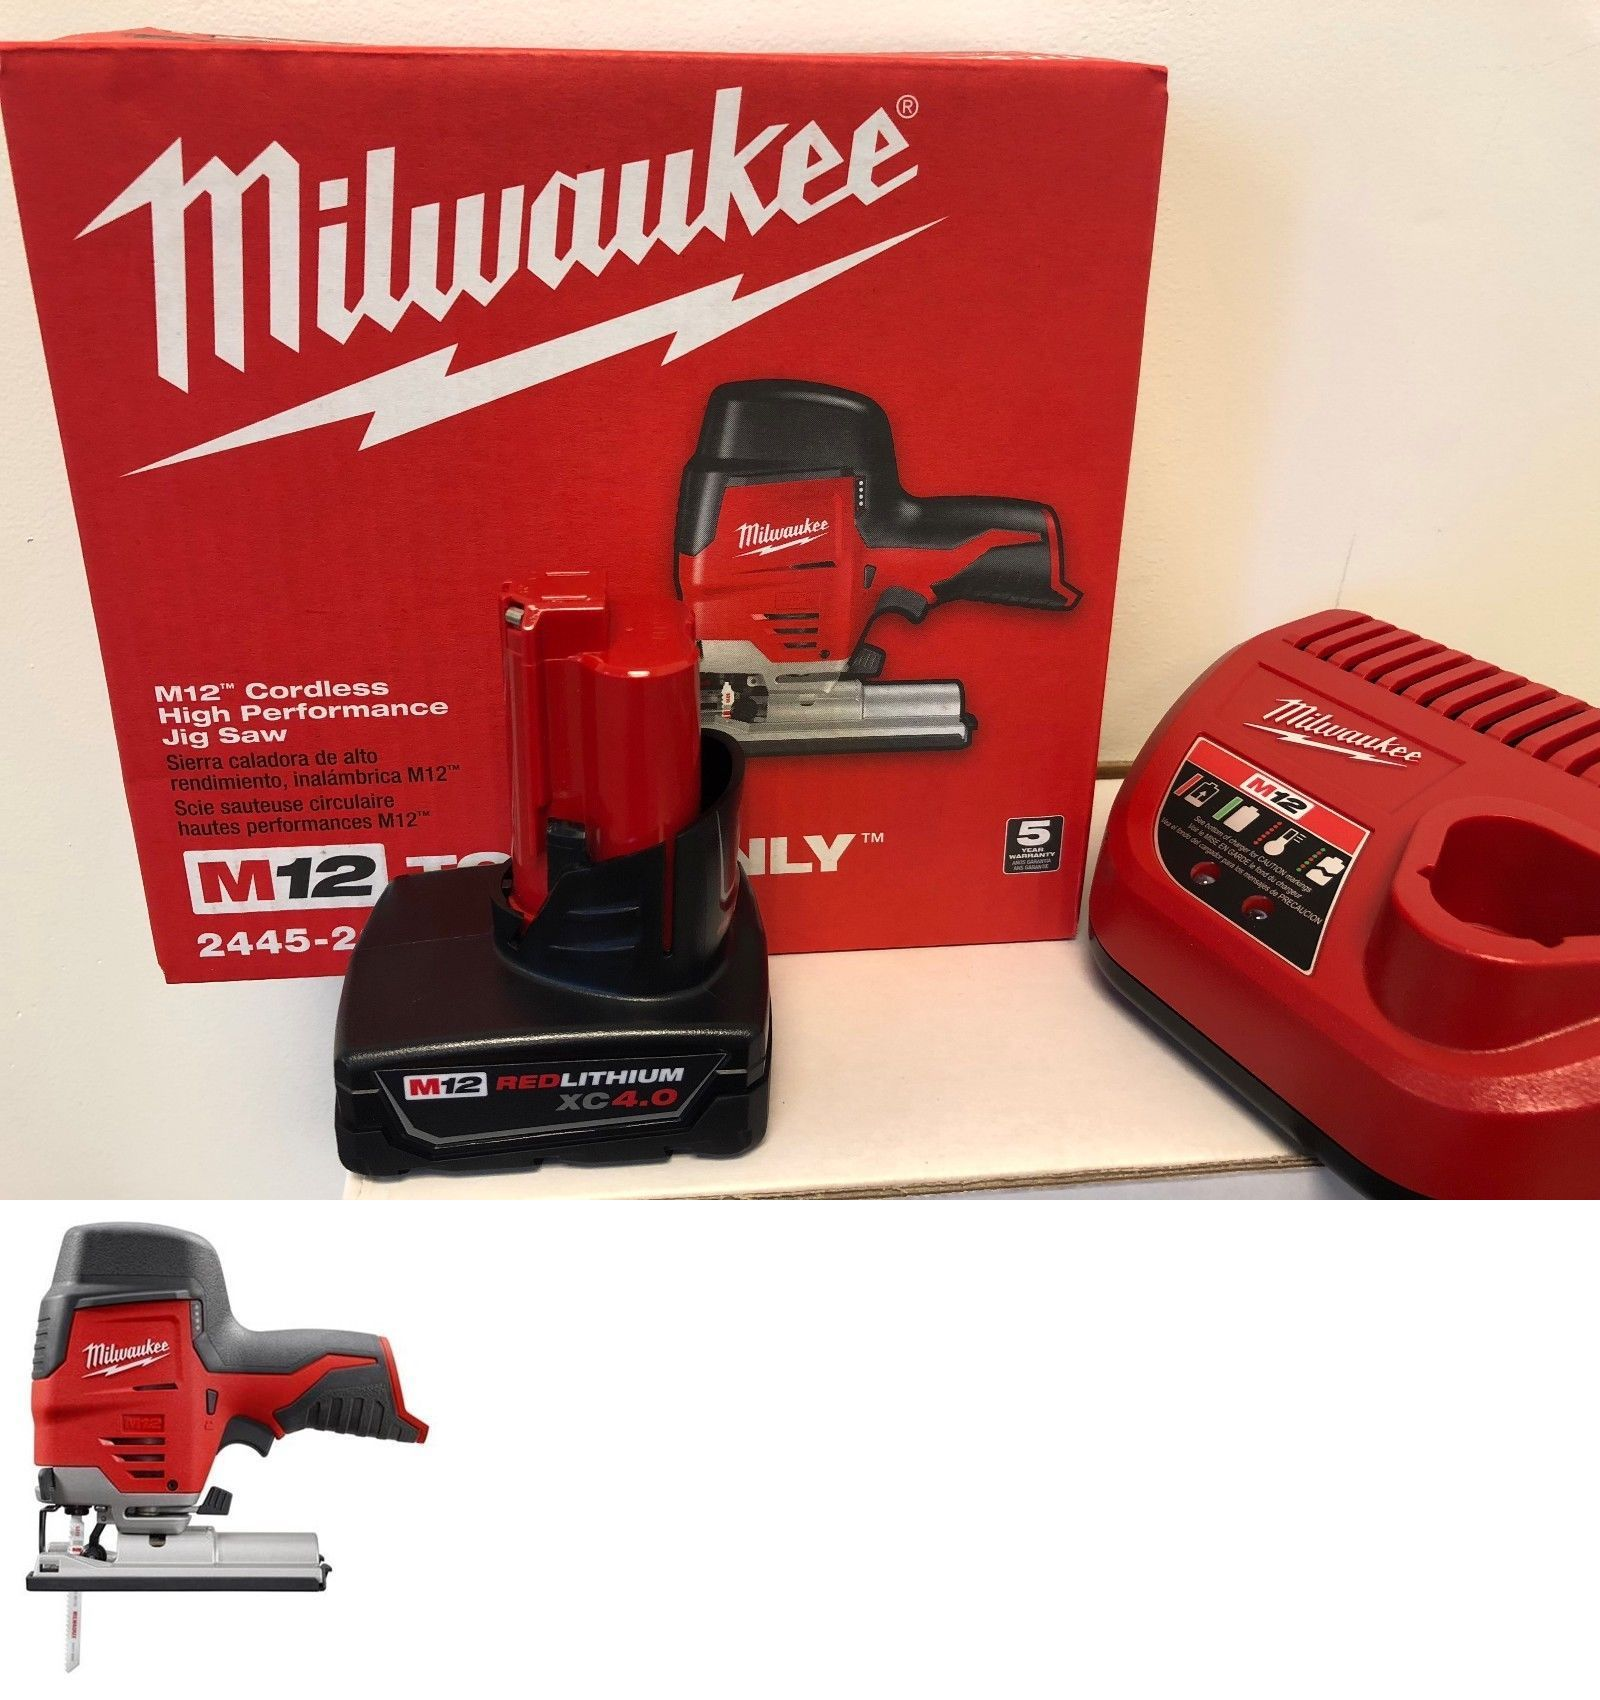 Jig and Scroll Saws 122834: Milwaukee 2445-20 M12 Cordless Jig Saw + (1)  4.0Ah Battery + (1) Charger -> BUY IT NOW ONLY: $129.99 on #eBay #scroll  #milwaukee ...